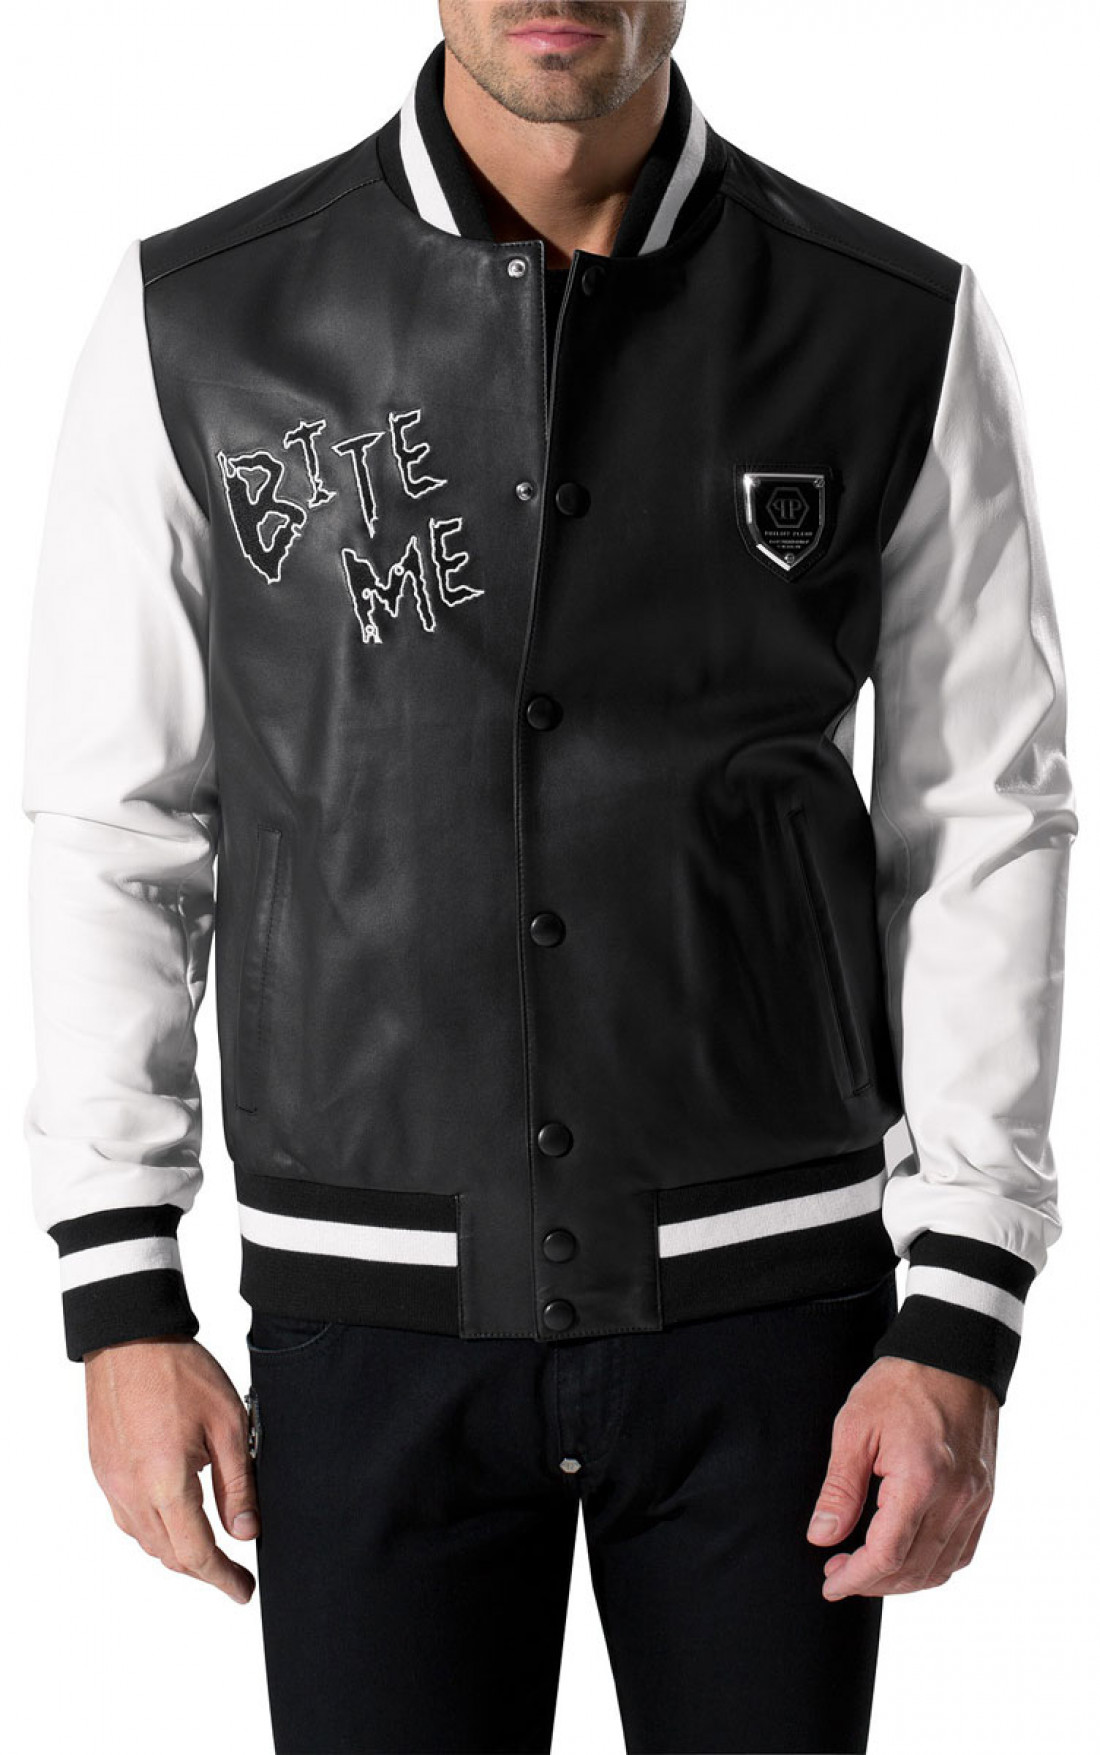 philipp plein leather jackets mens shark leather jacket. Black Bedroom Furniture Sets. Home Design Ideas